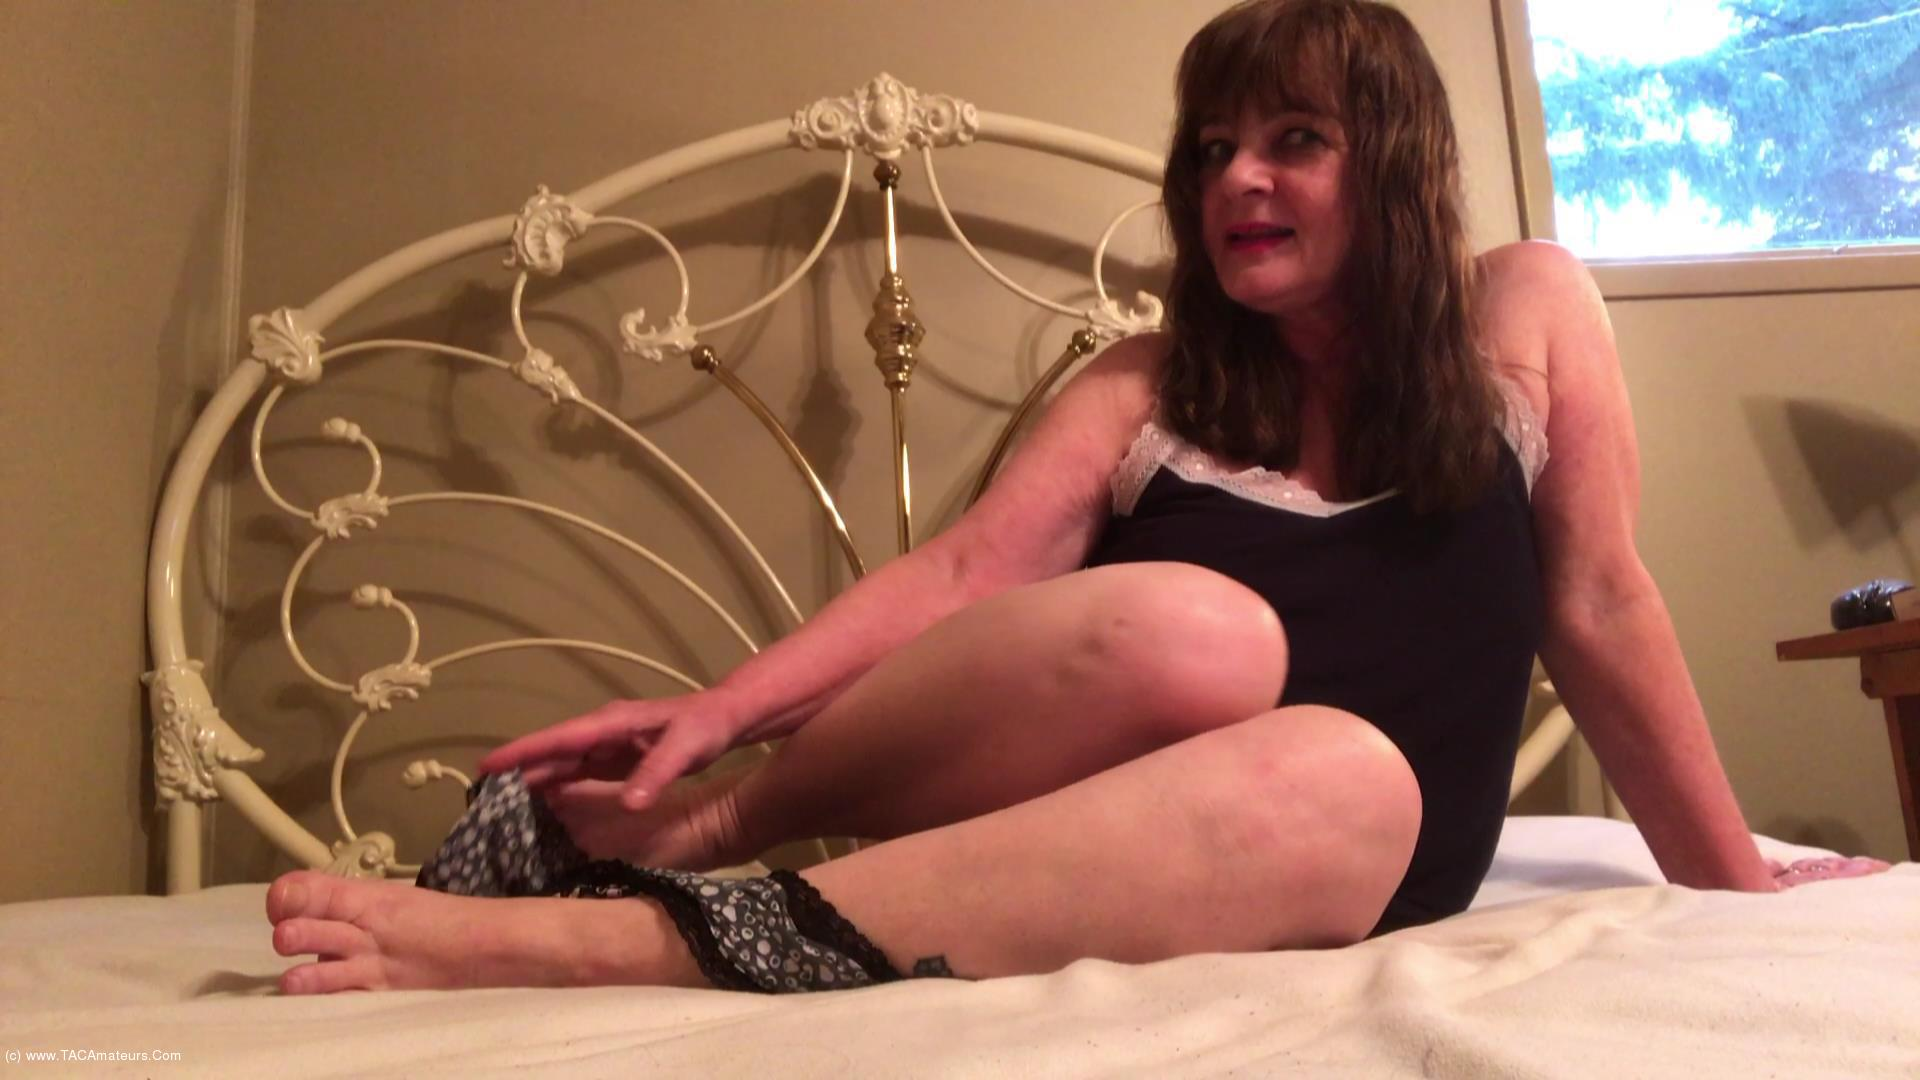 CougarBabeJolee - My Arse Needs Worshipping scene 1